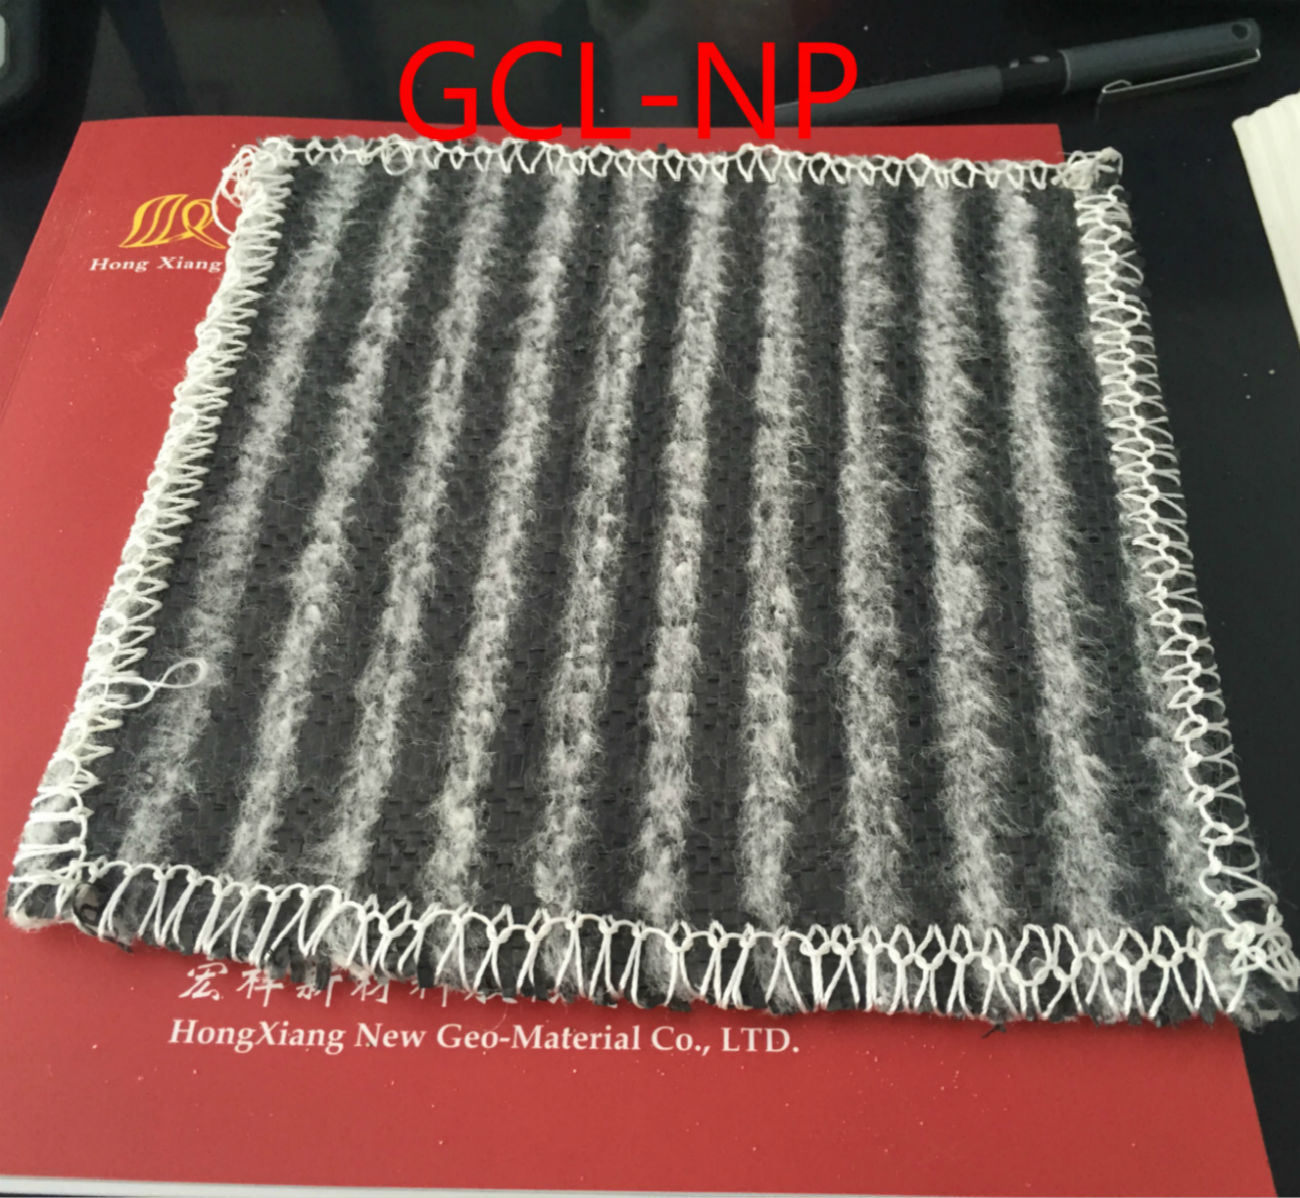 Needle Punched Geosynthetic Clay Liner